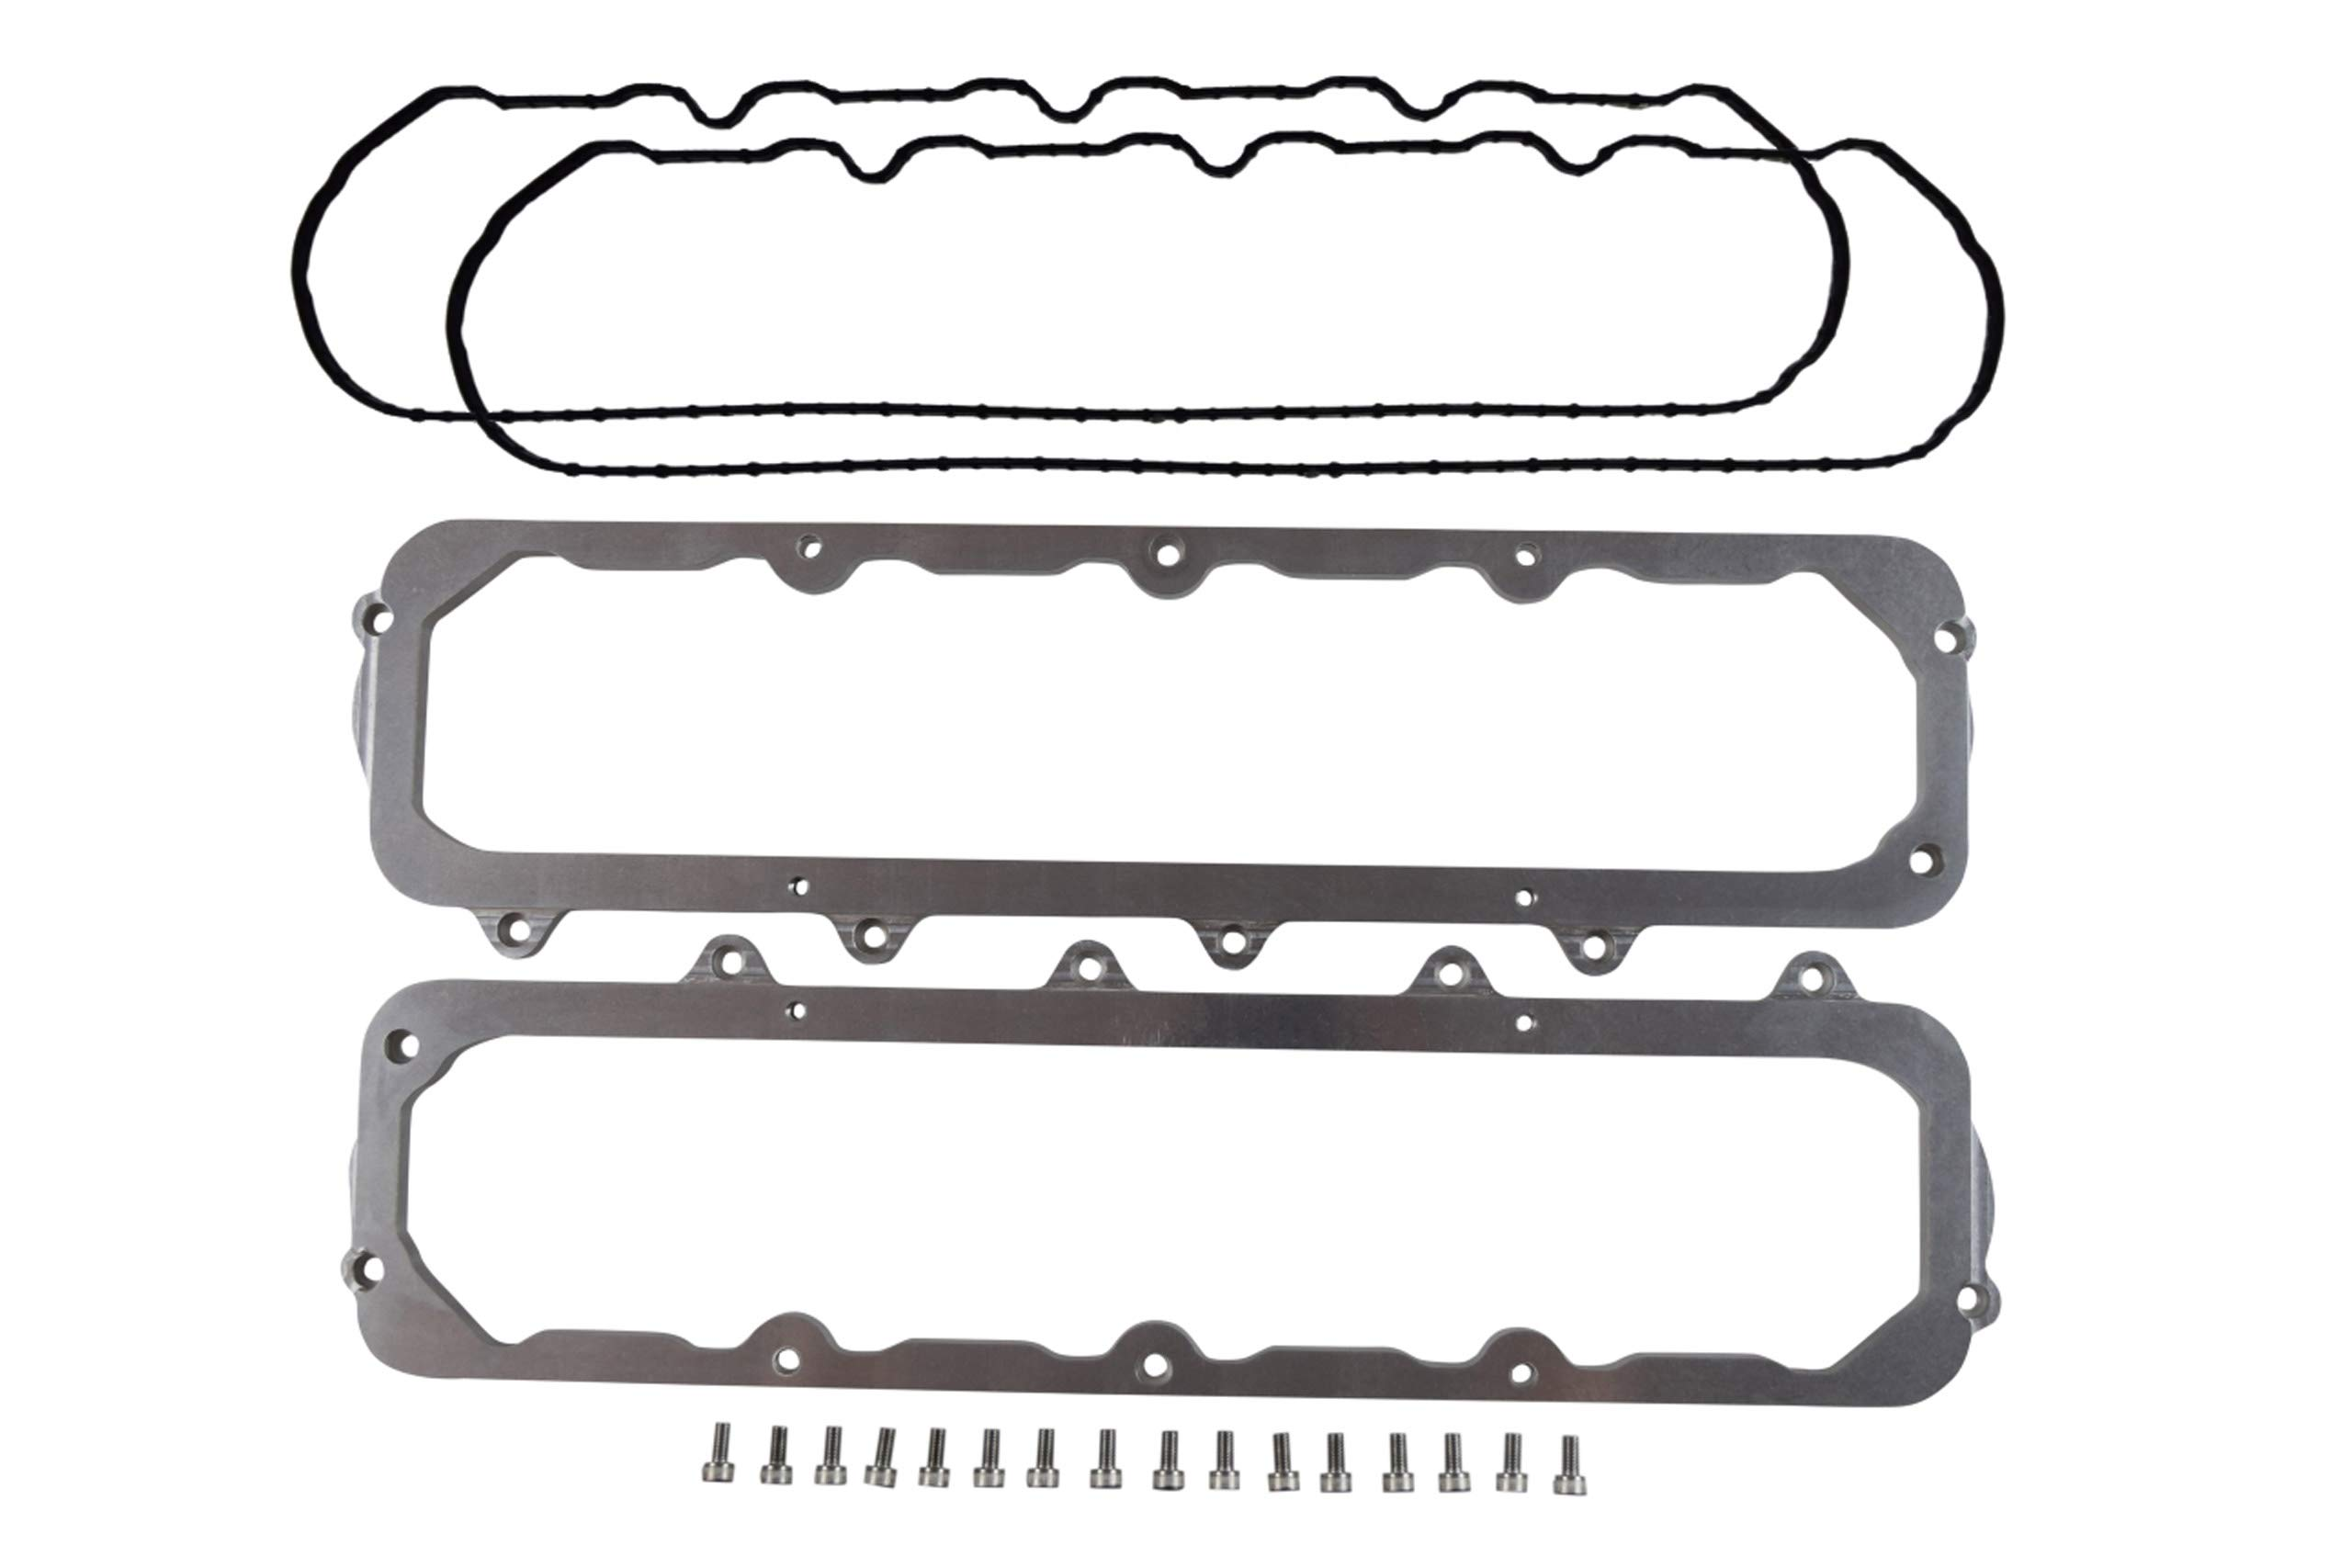 ICT Billet LT Gen V to SBC 1960-86 Valve Cover Adapter Plate Set LT1 LT4 L83 L86 LTX 551327